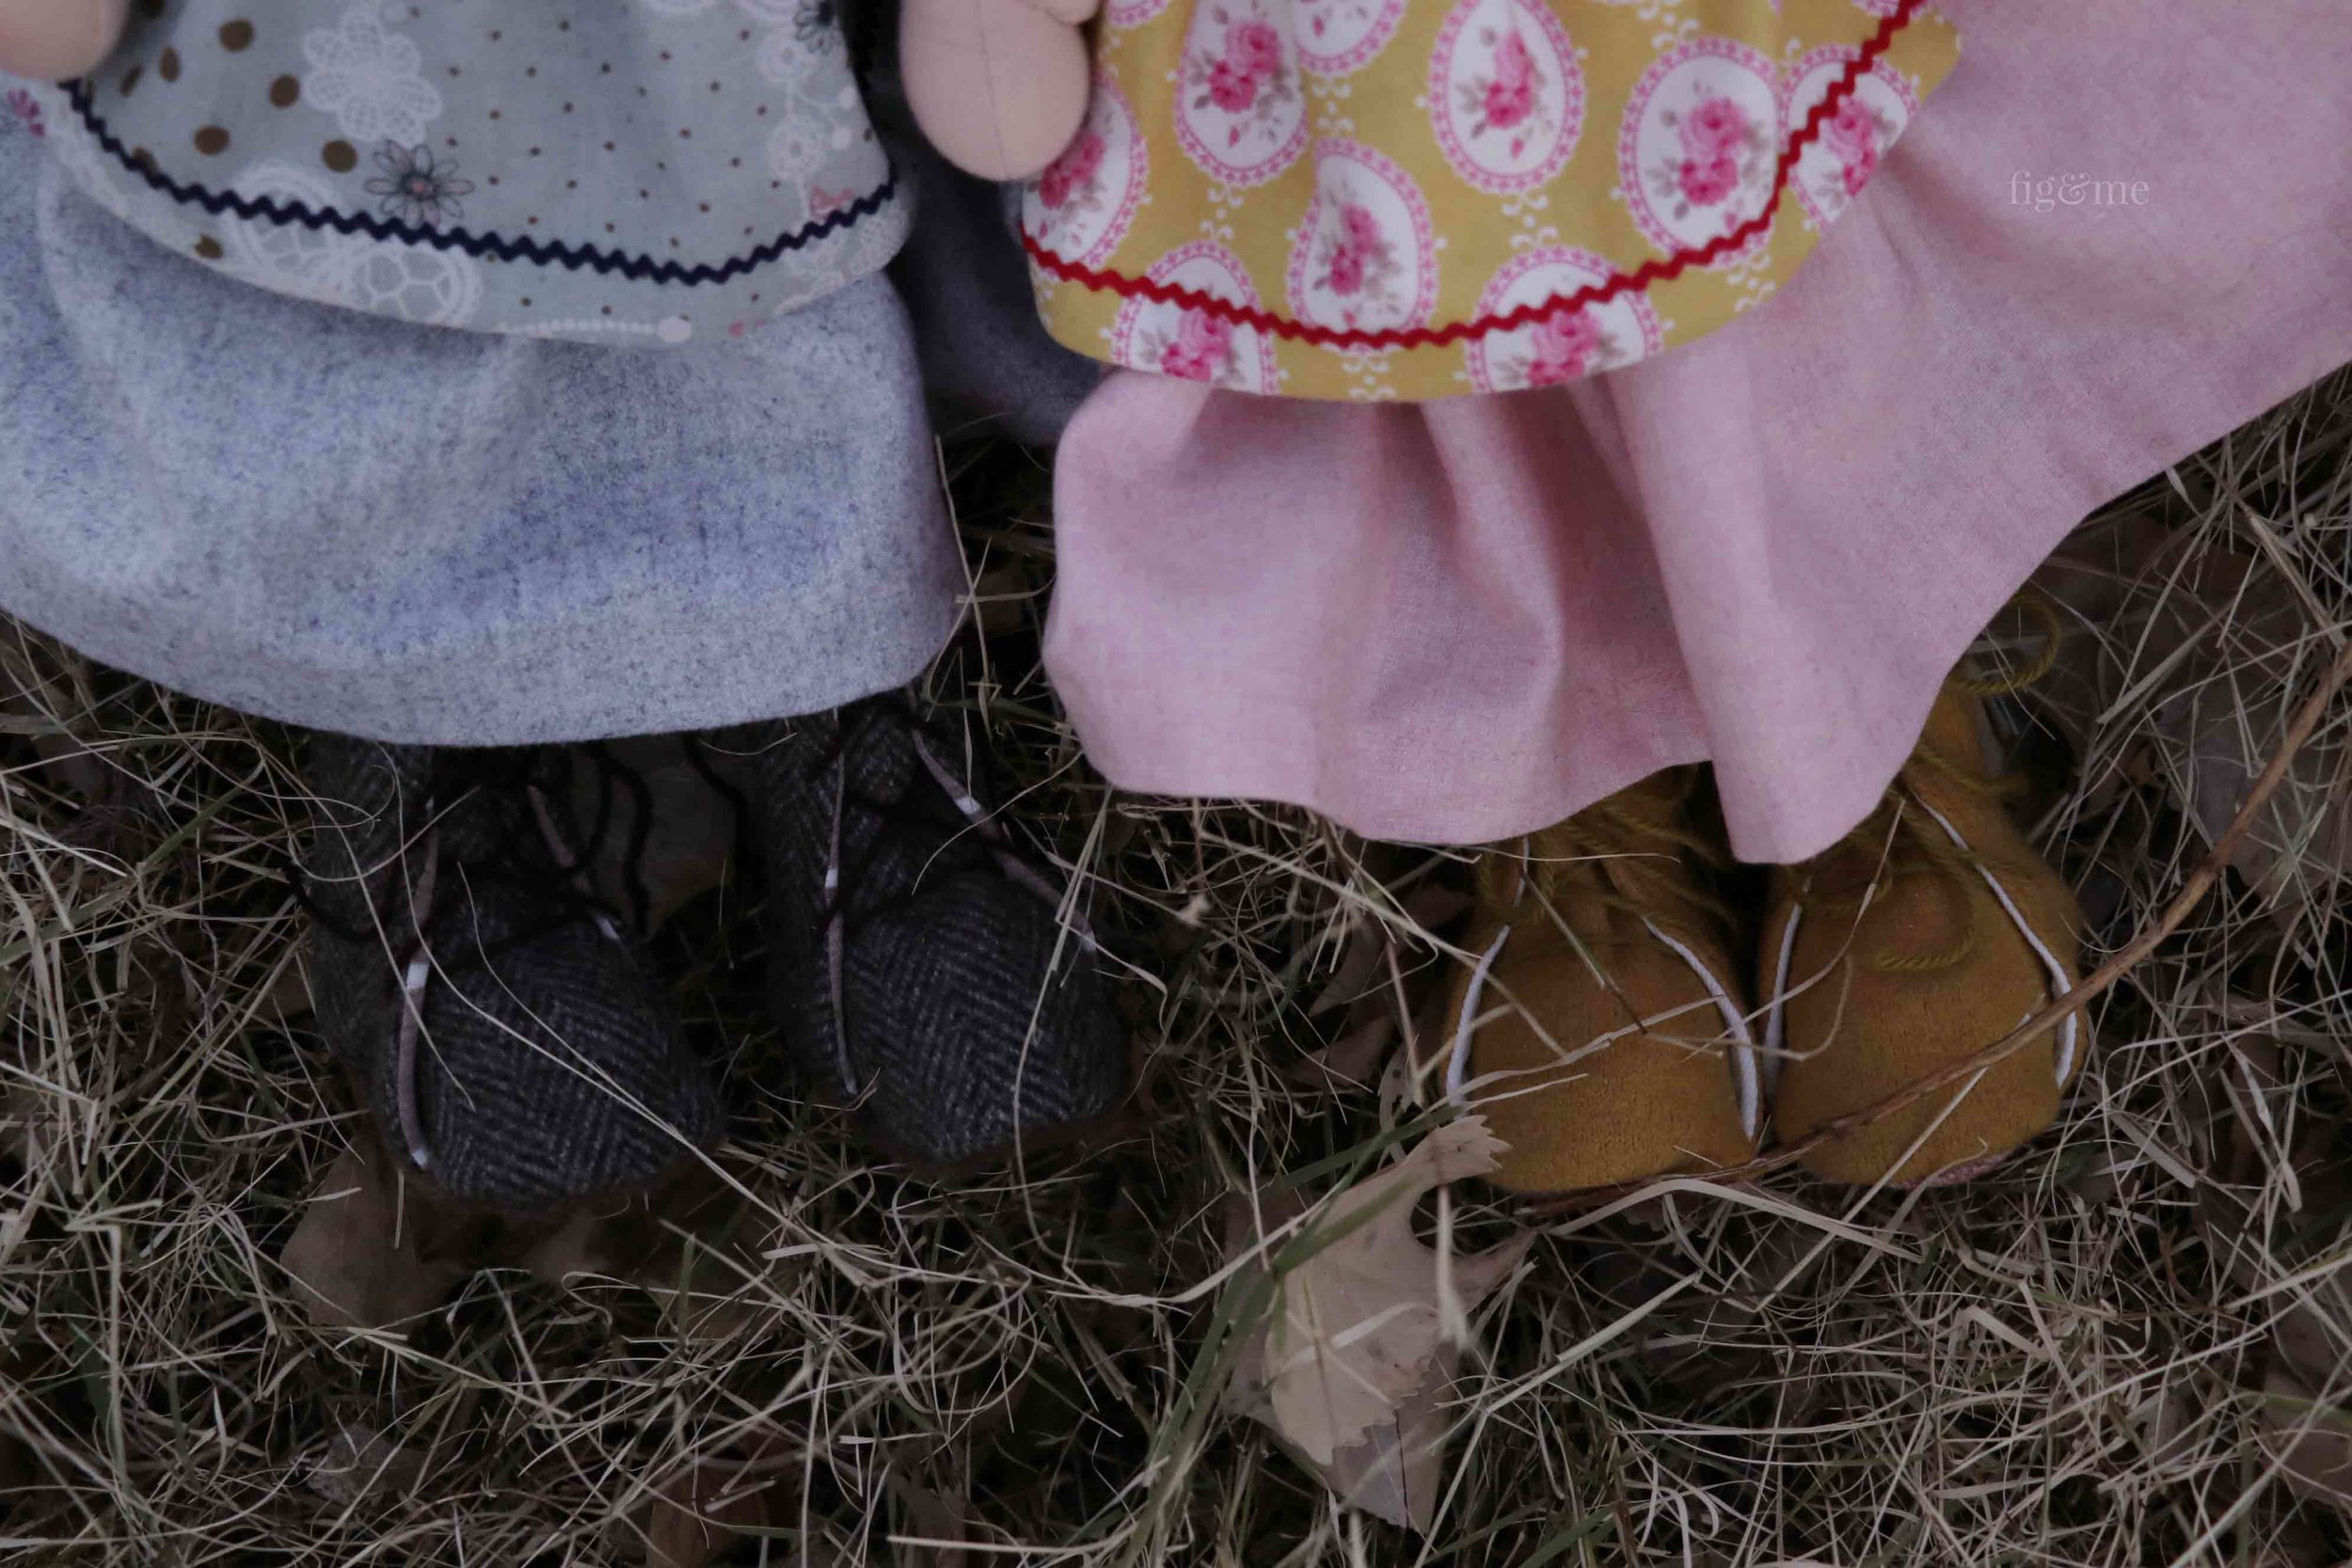 Lovely tall boots, meant to go on many nature walks. By Fig and Me.